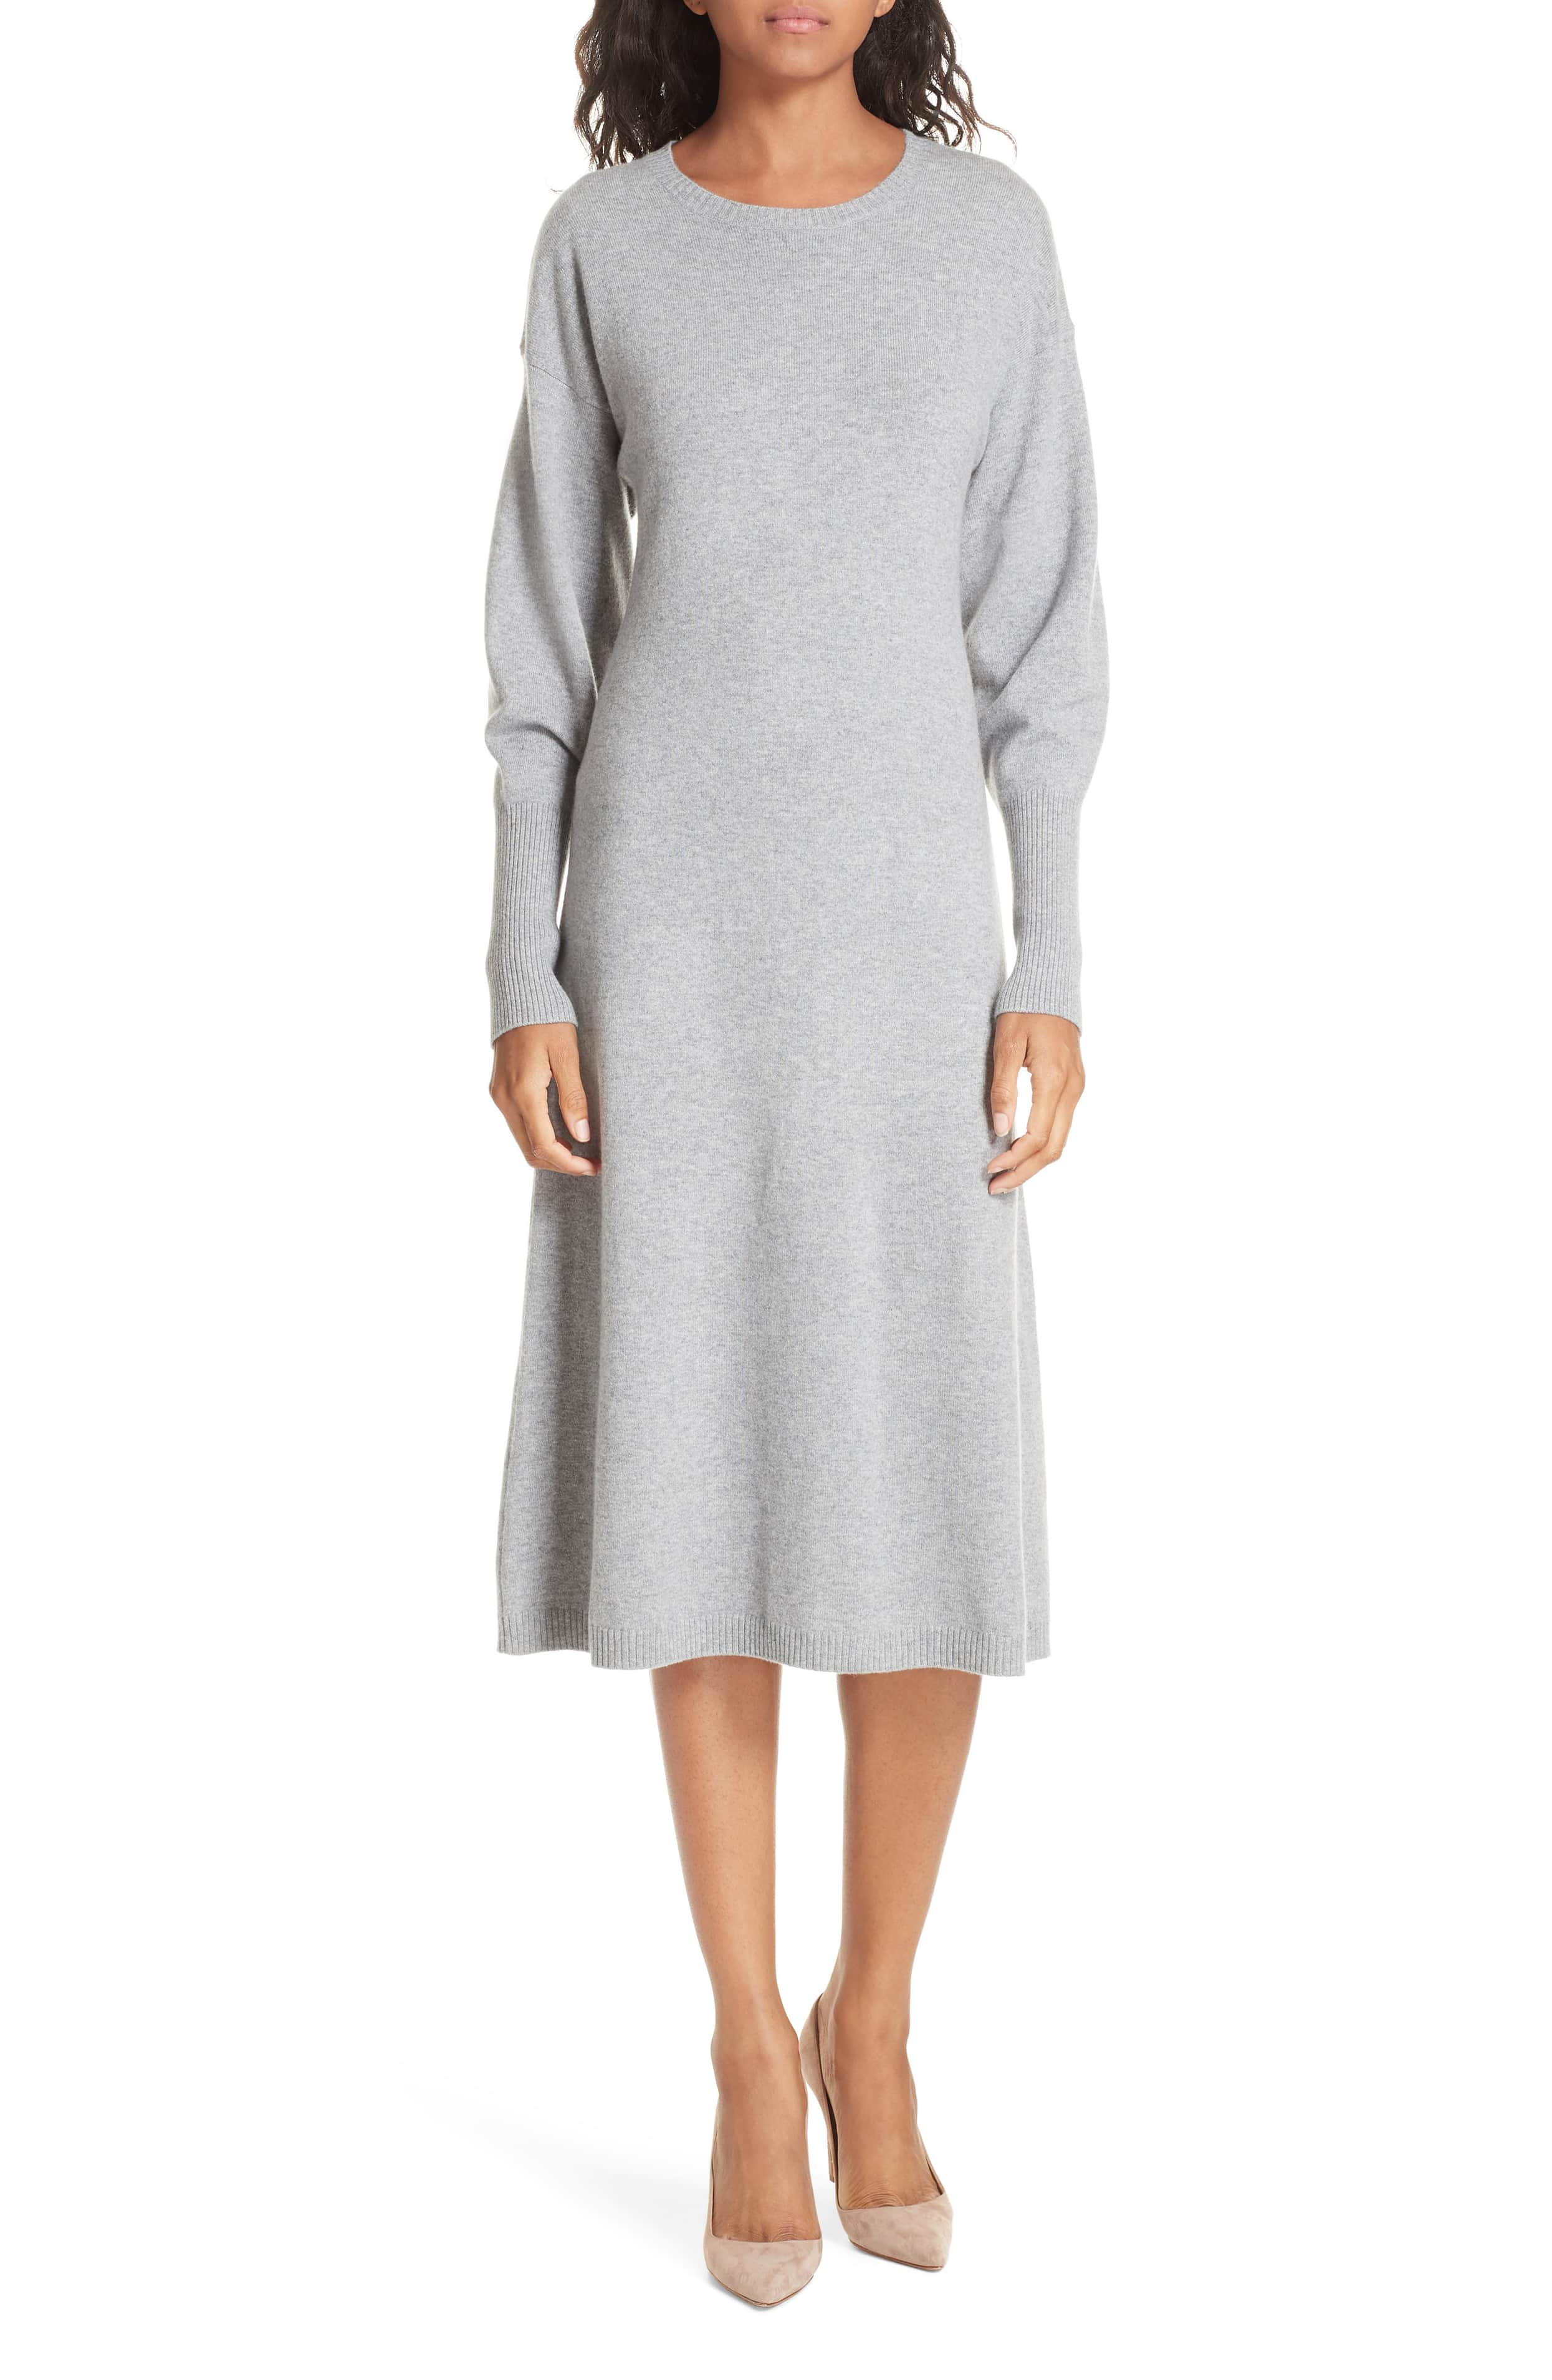 gray sweater dress nordstrom collection